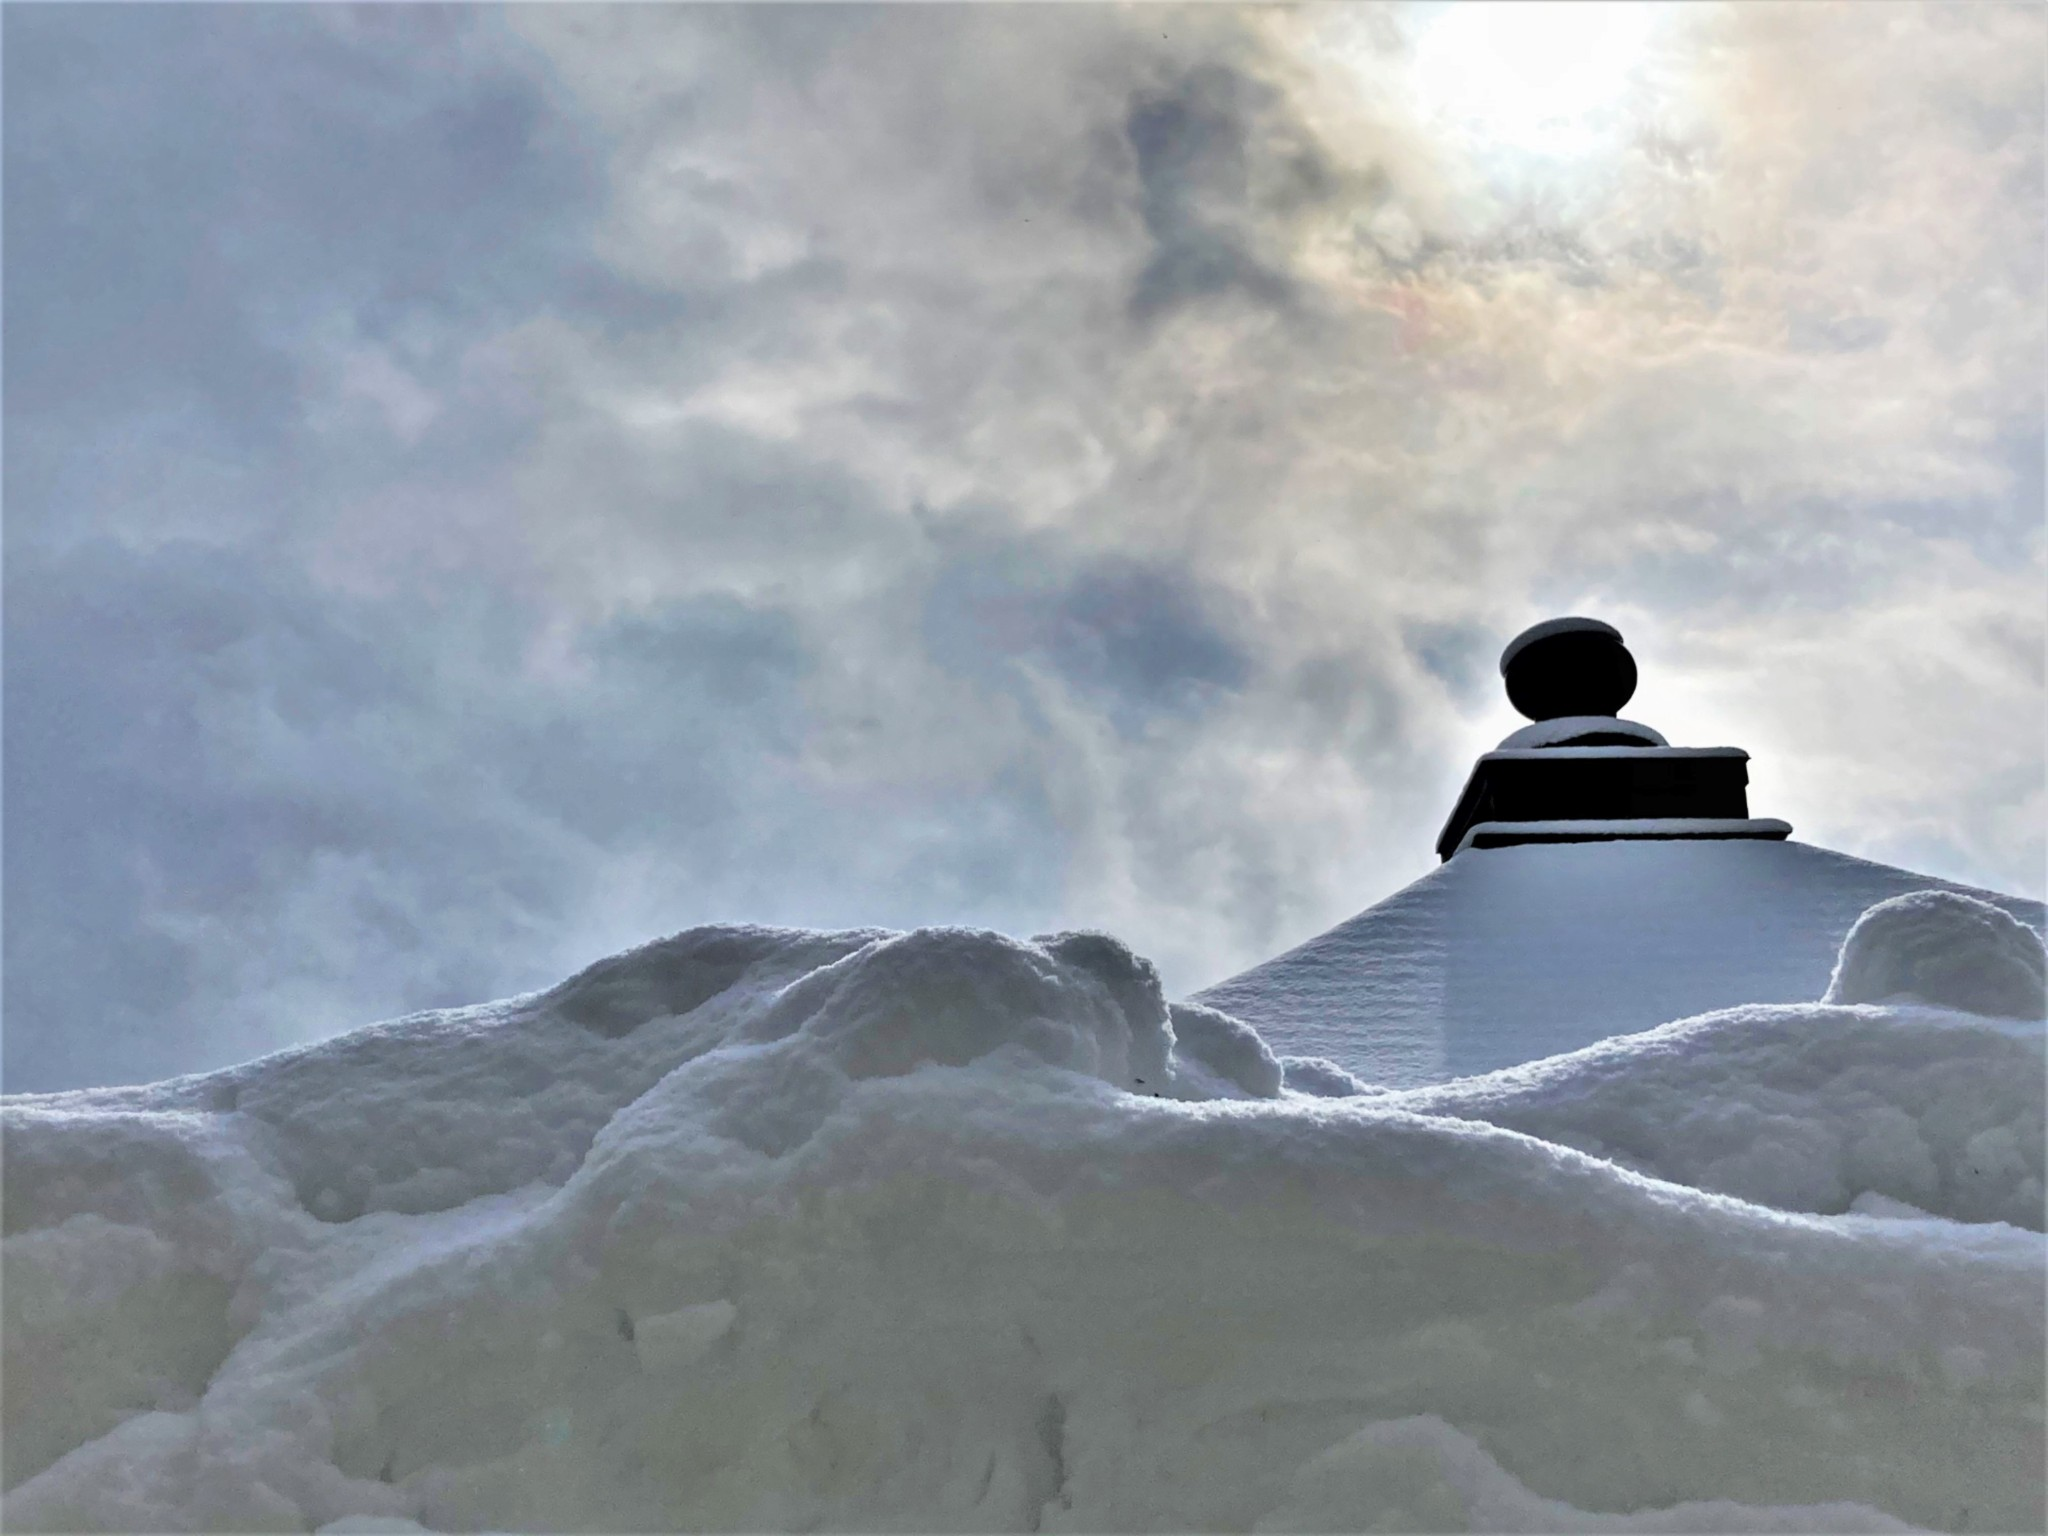 The winter sun piercing the clouds over the roof of a Japanese Buddhist temple and a large bank of snow.